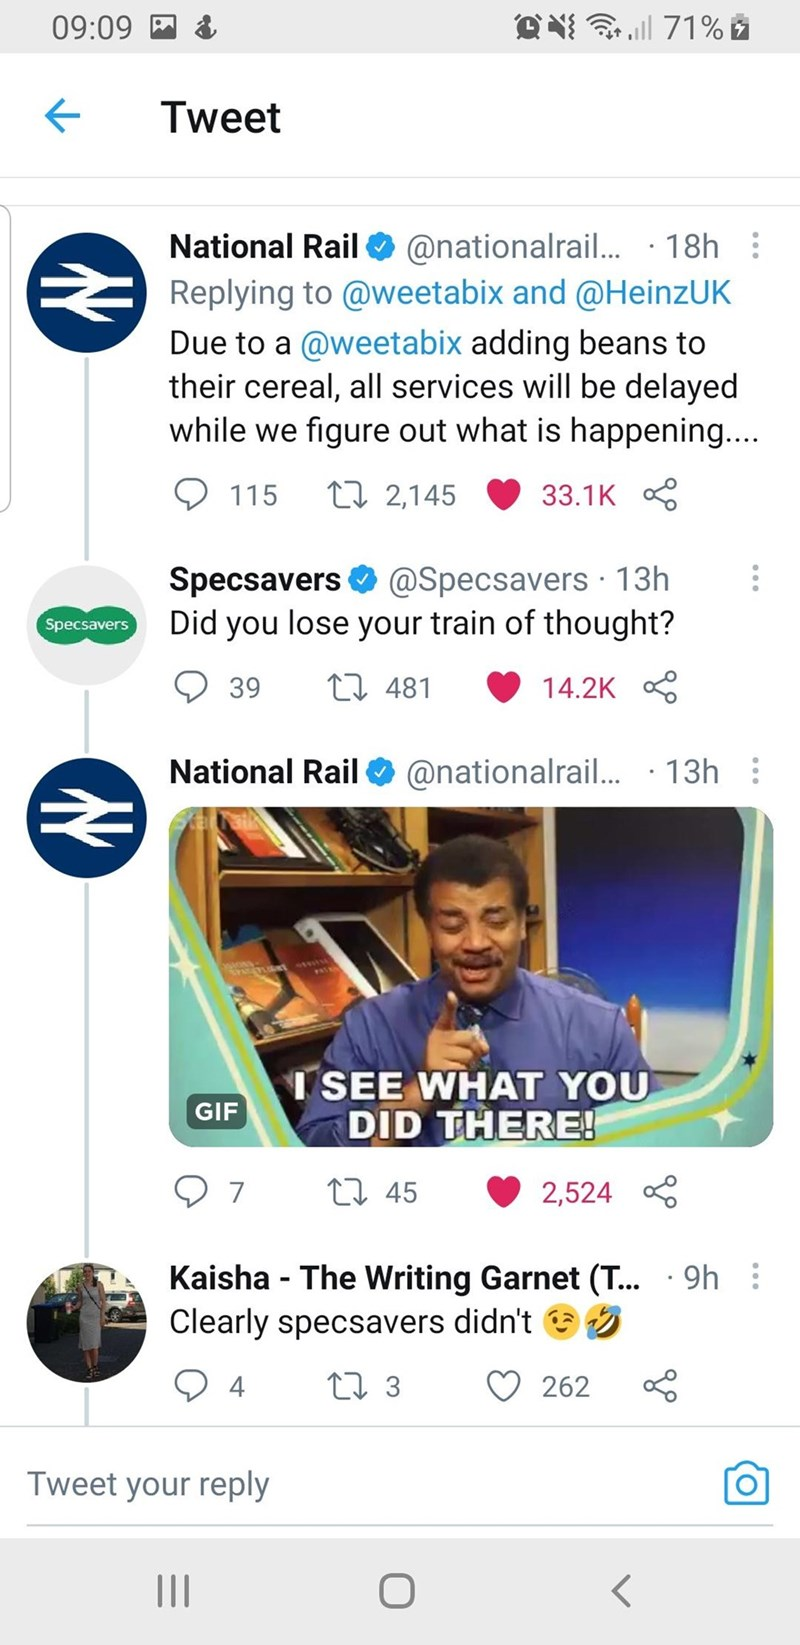 Product - 09:09 M O N 71% Ž Tweet National RailO @nationalrail.. · 18h : Replying to @weetabix and @HeinzUK Due to a @weetabix adding beans to their cereal, all services will be delayed while we figure out what is happening.... O 115 27 2,145 33.1K 8 Specsavers O Did you lose your train of thought? @Specsavers · 13h Specsavers 39 t7 481 14.2K 8 National Rail O @nationalrail. · 13h : PAS I SEE WHAT YOU DID THERE! GIF 27 45 2,524 Kaisha - The Writing Garnet (T... Clearly specsavers didn't e 9h : 4